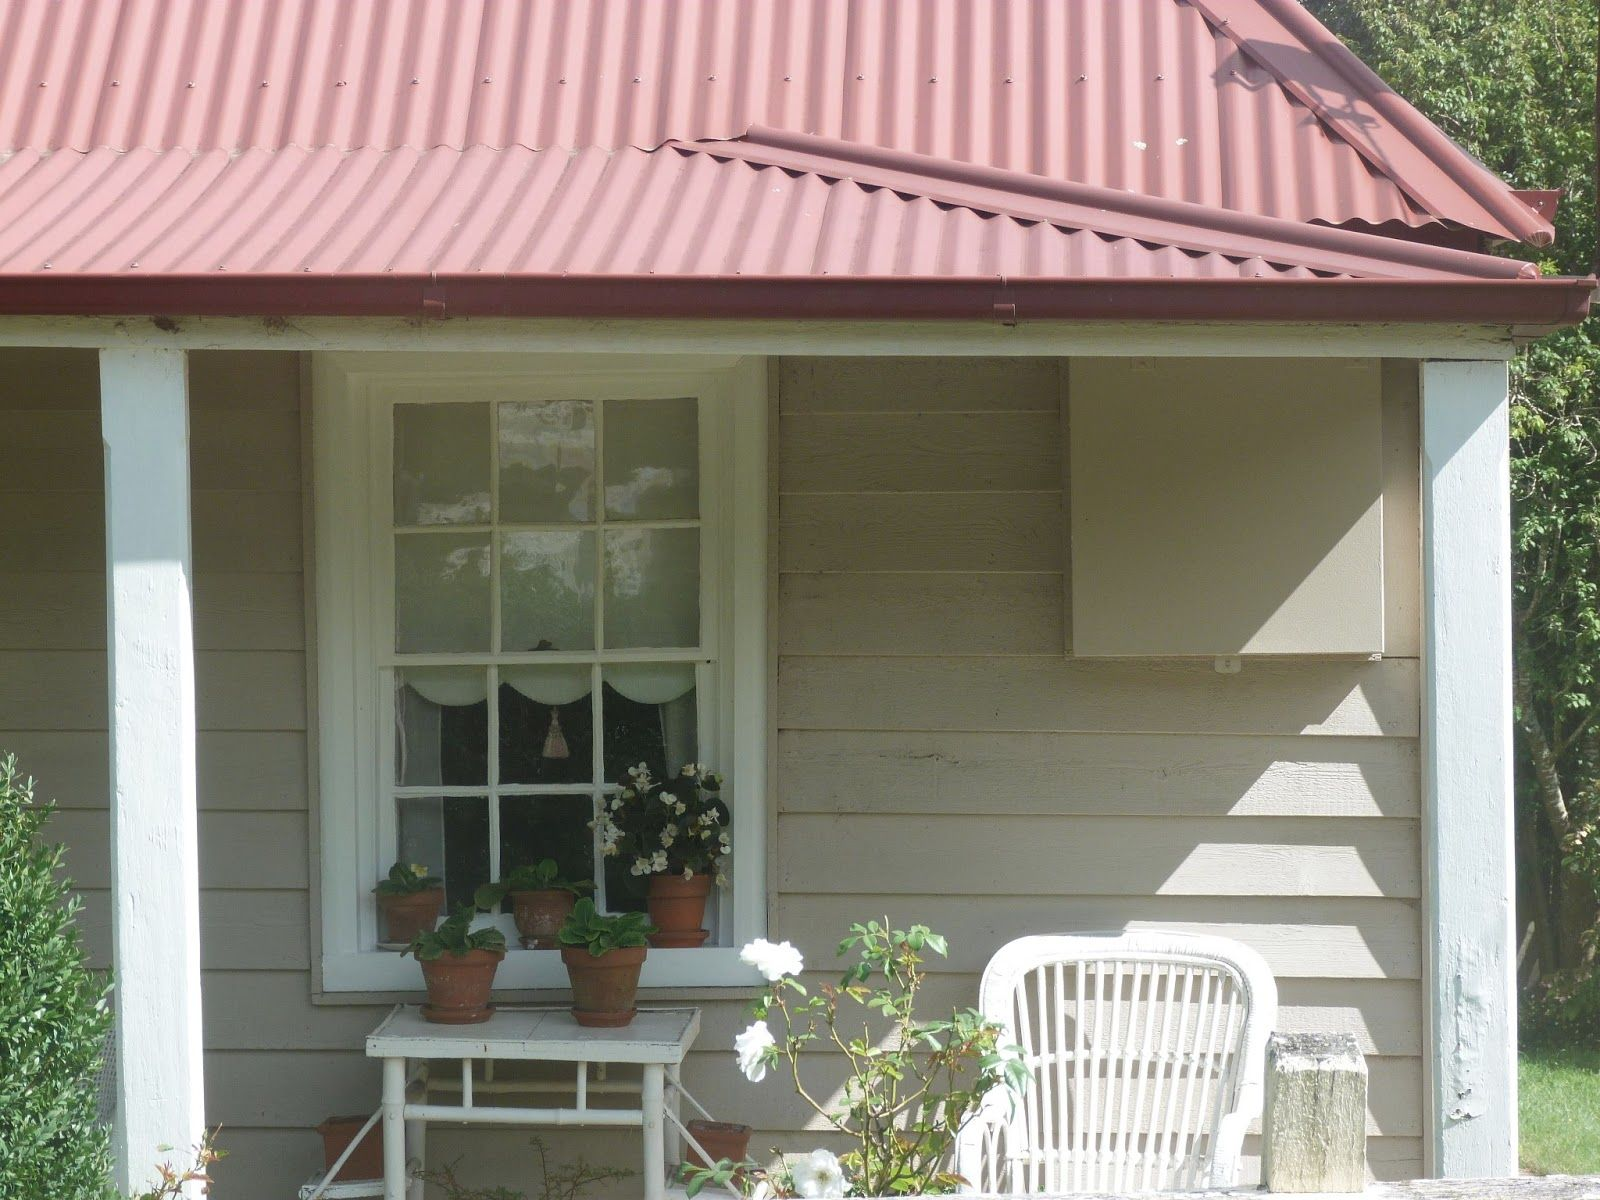 Traditional australia federation exterior inspirations paint - Best Exterior Paint Colors For Stucco Home With Red Tile Roof Google Search Home